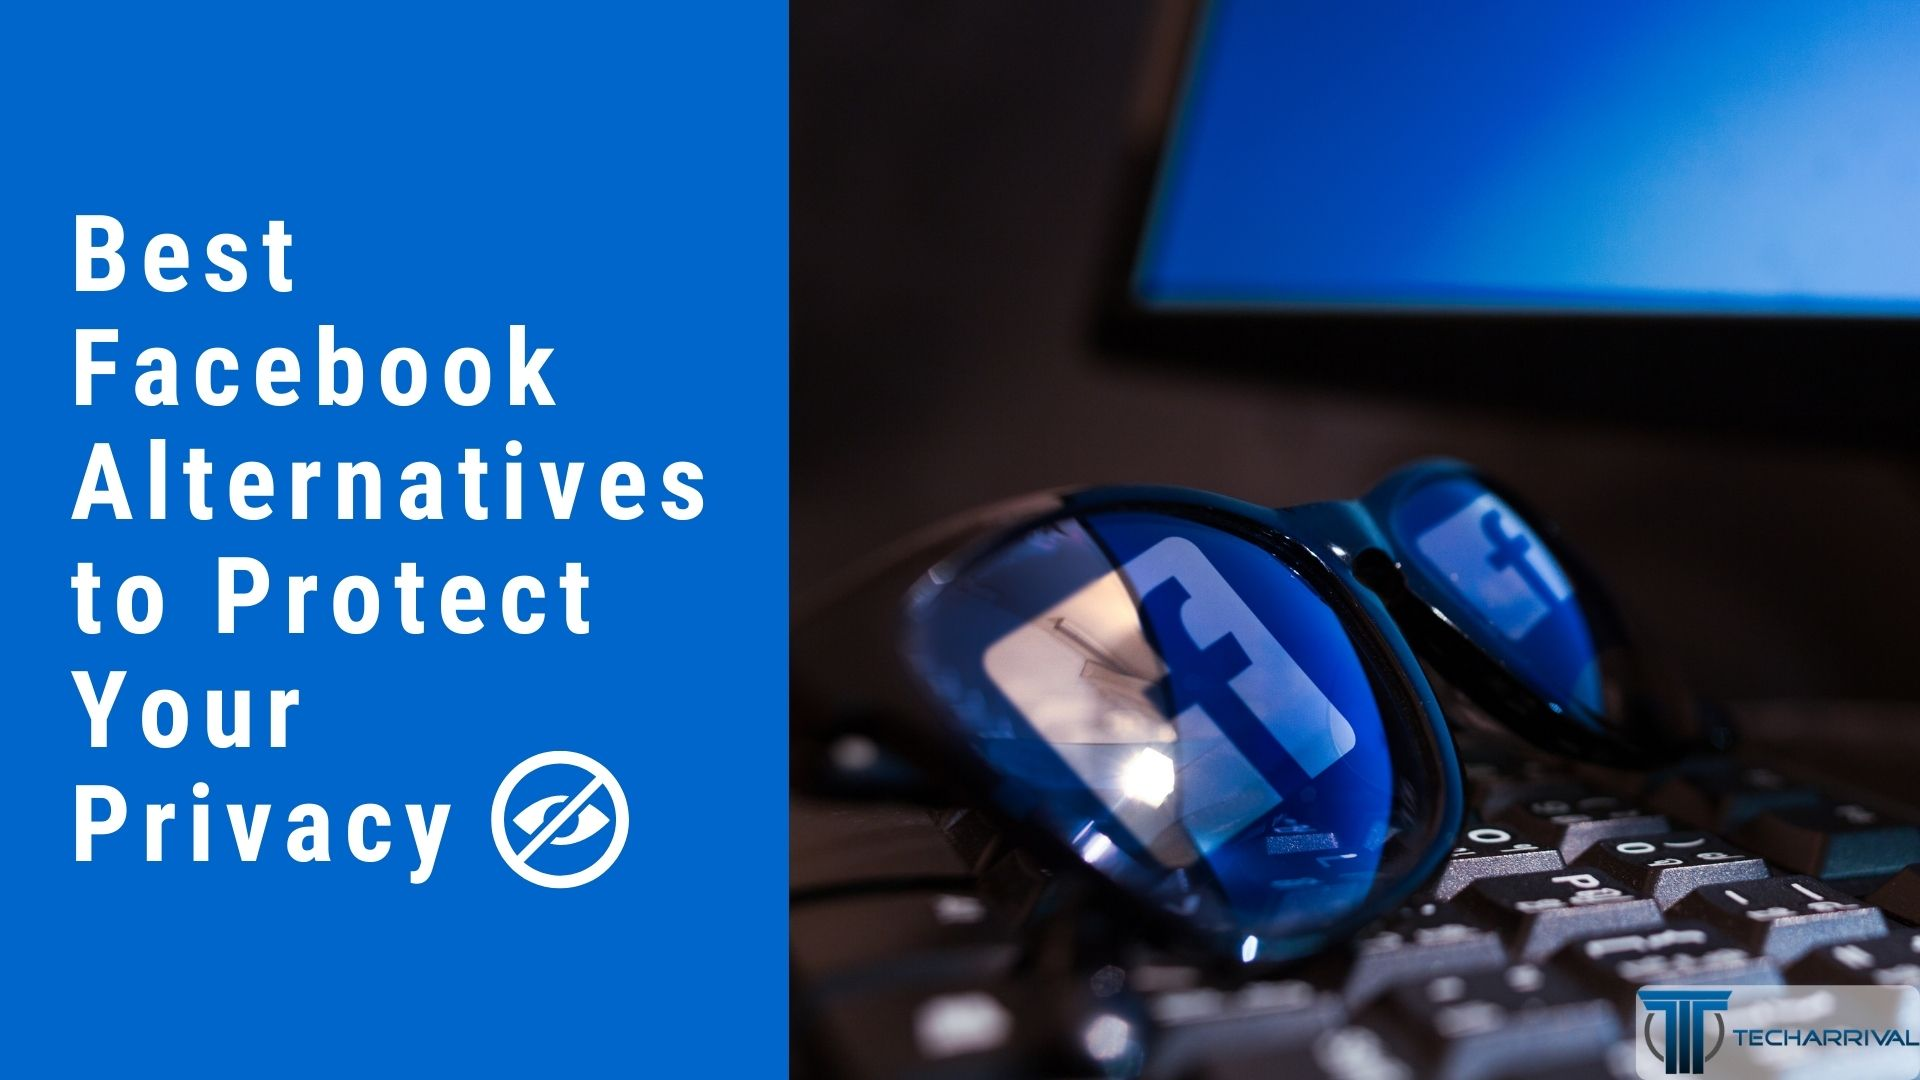 Best Facebook Alternatives To Protect Your Privacy